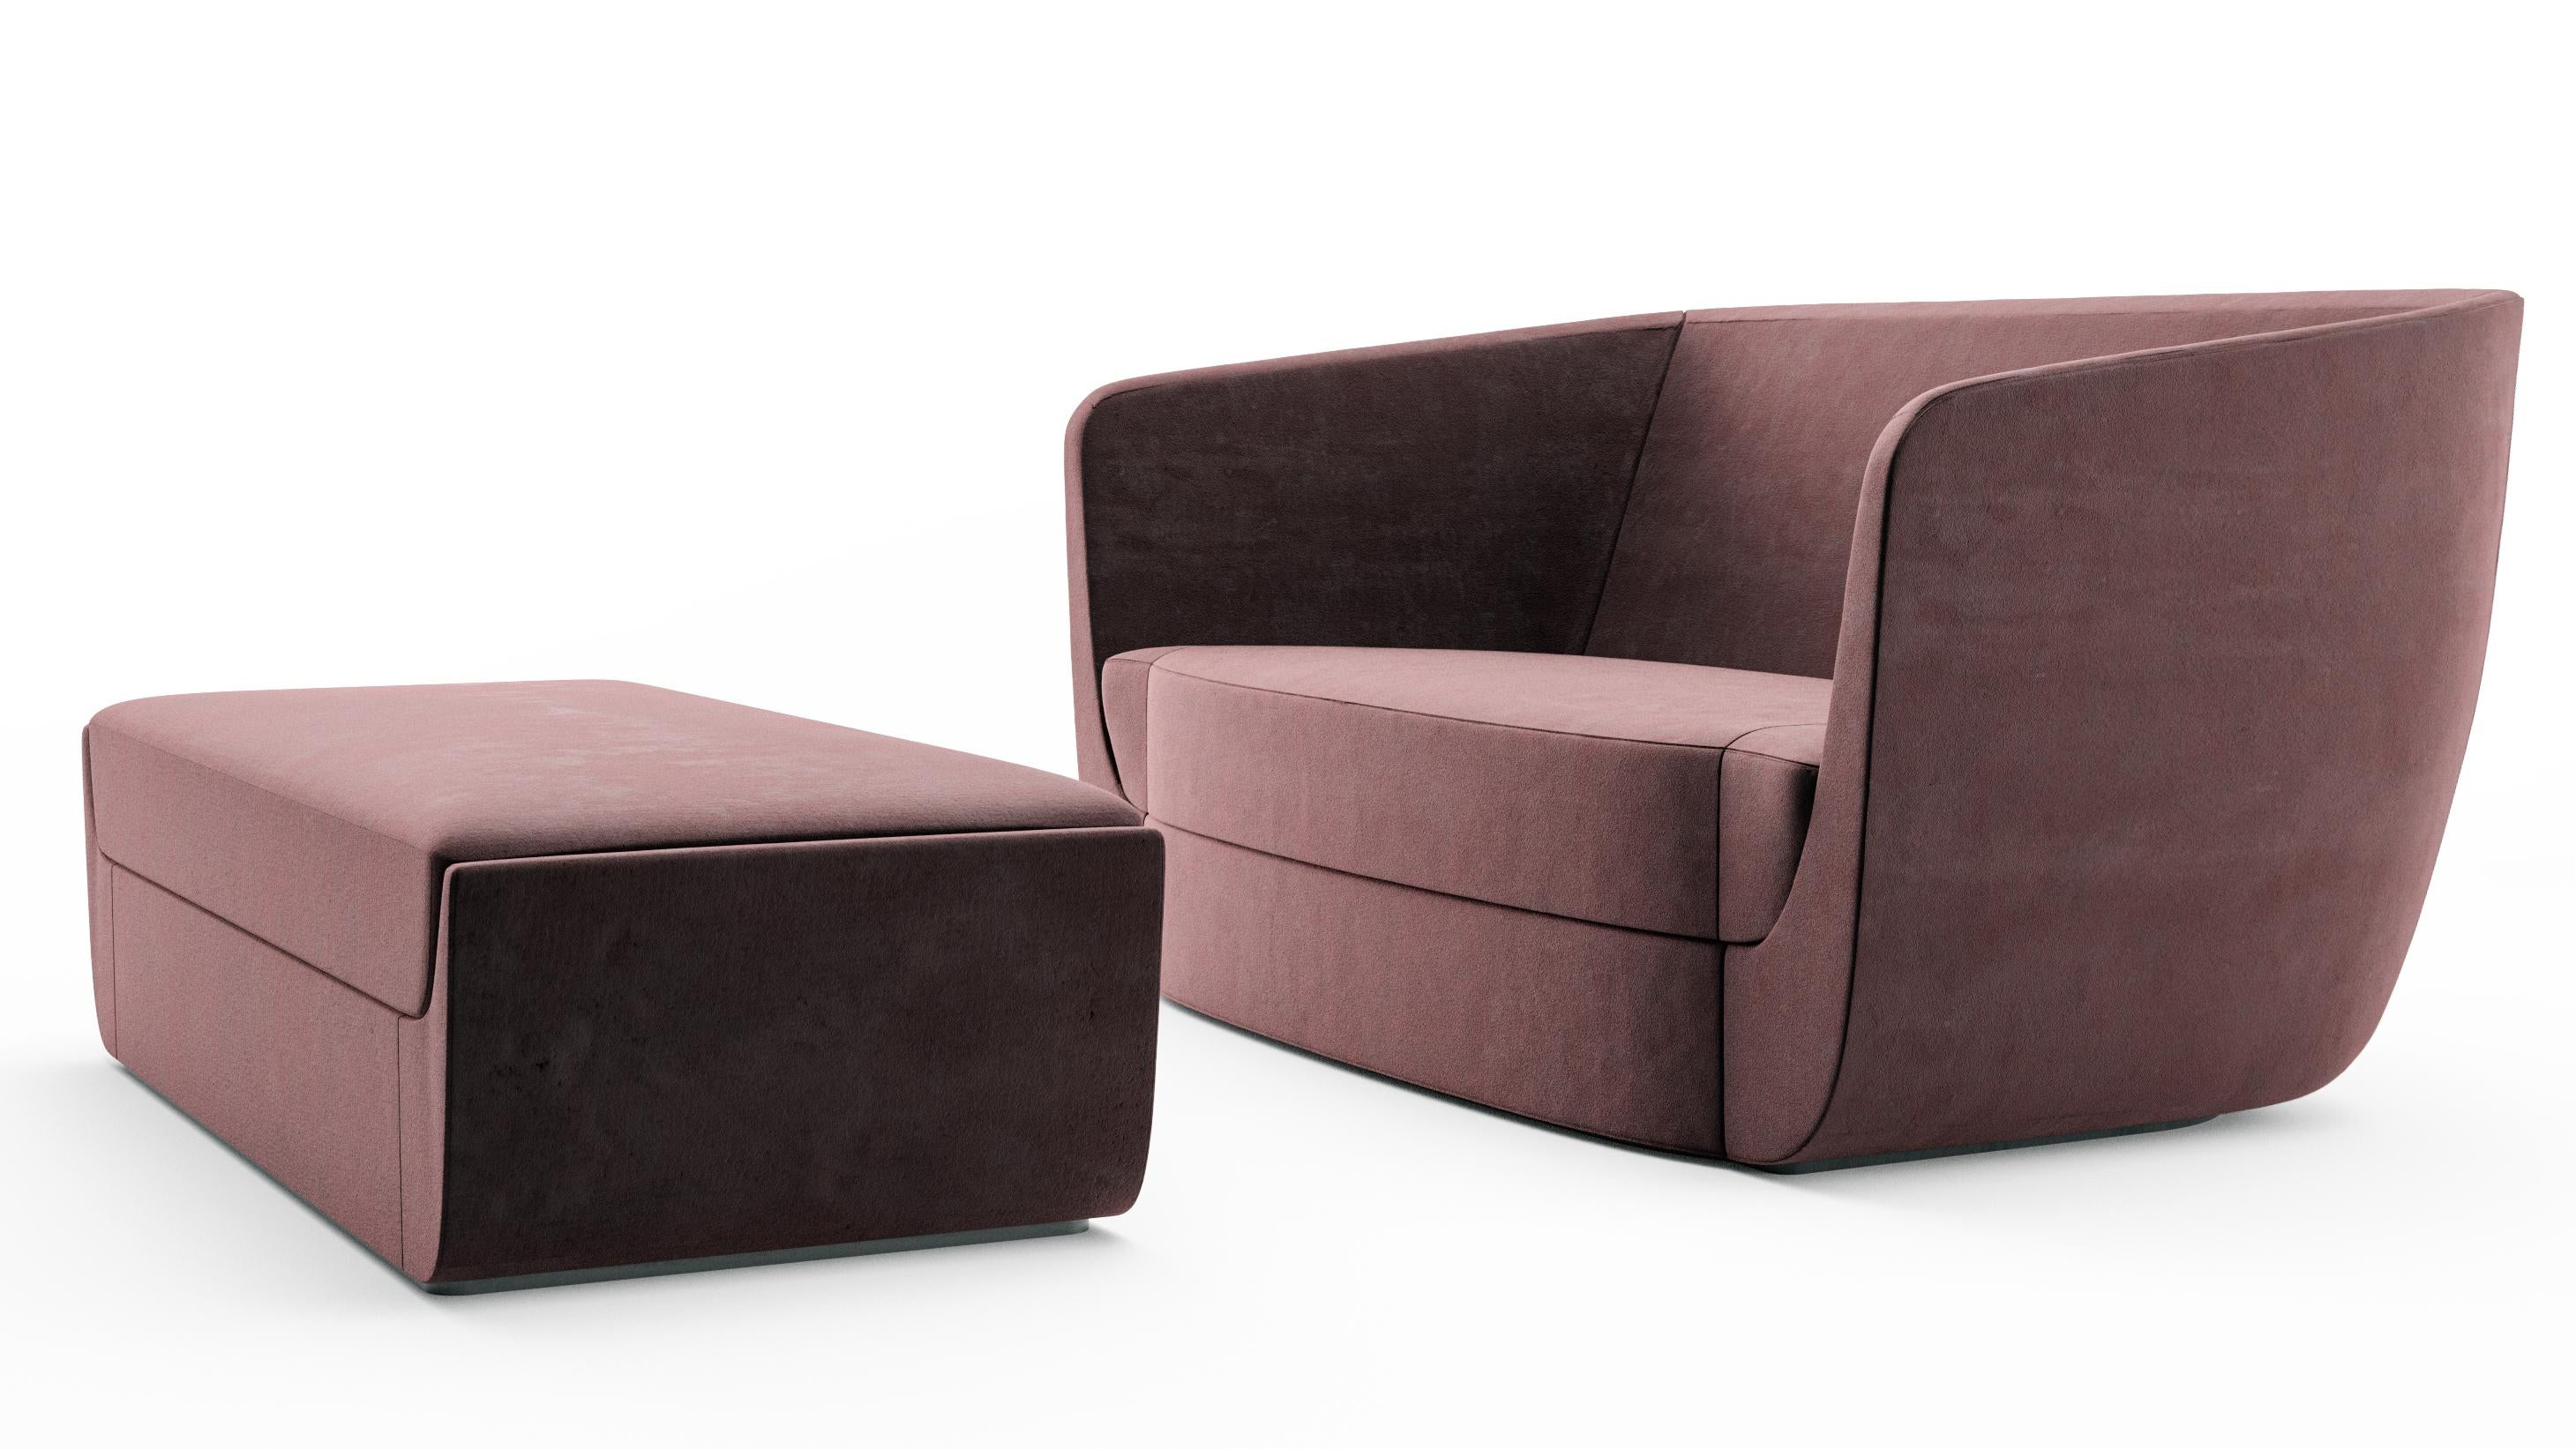 Edgy furniture High End The Clasp Collection Is Range Of Tight Upholstered Furniture That Is Edgy And Embracing 1stdibs Clasp Loveseat And Ottoman Contemporary Sofa Set Upholstered In